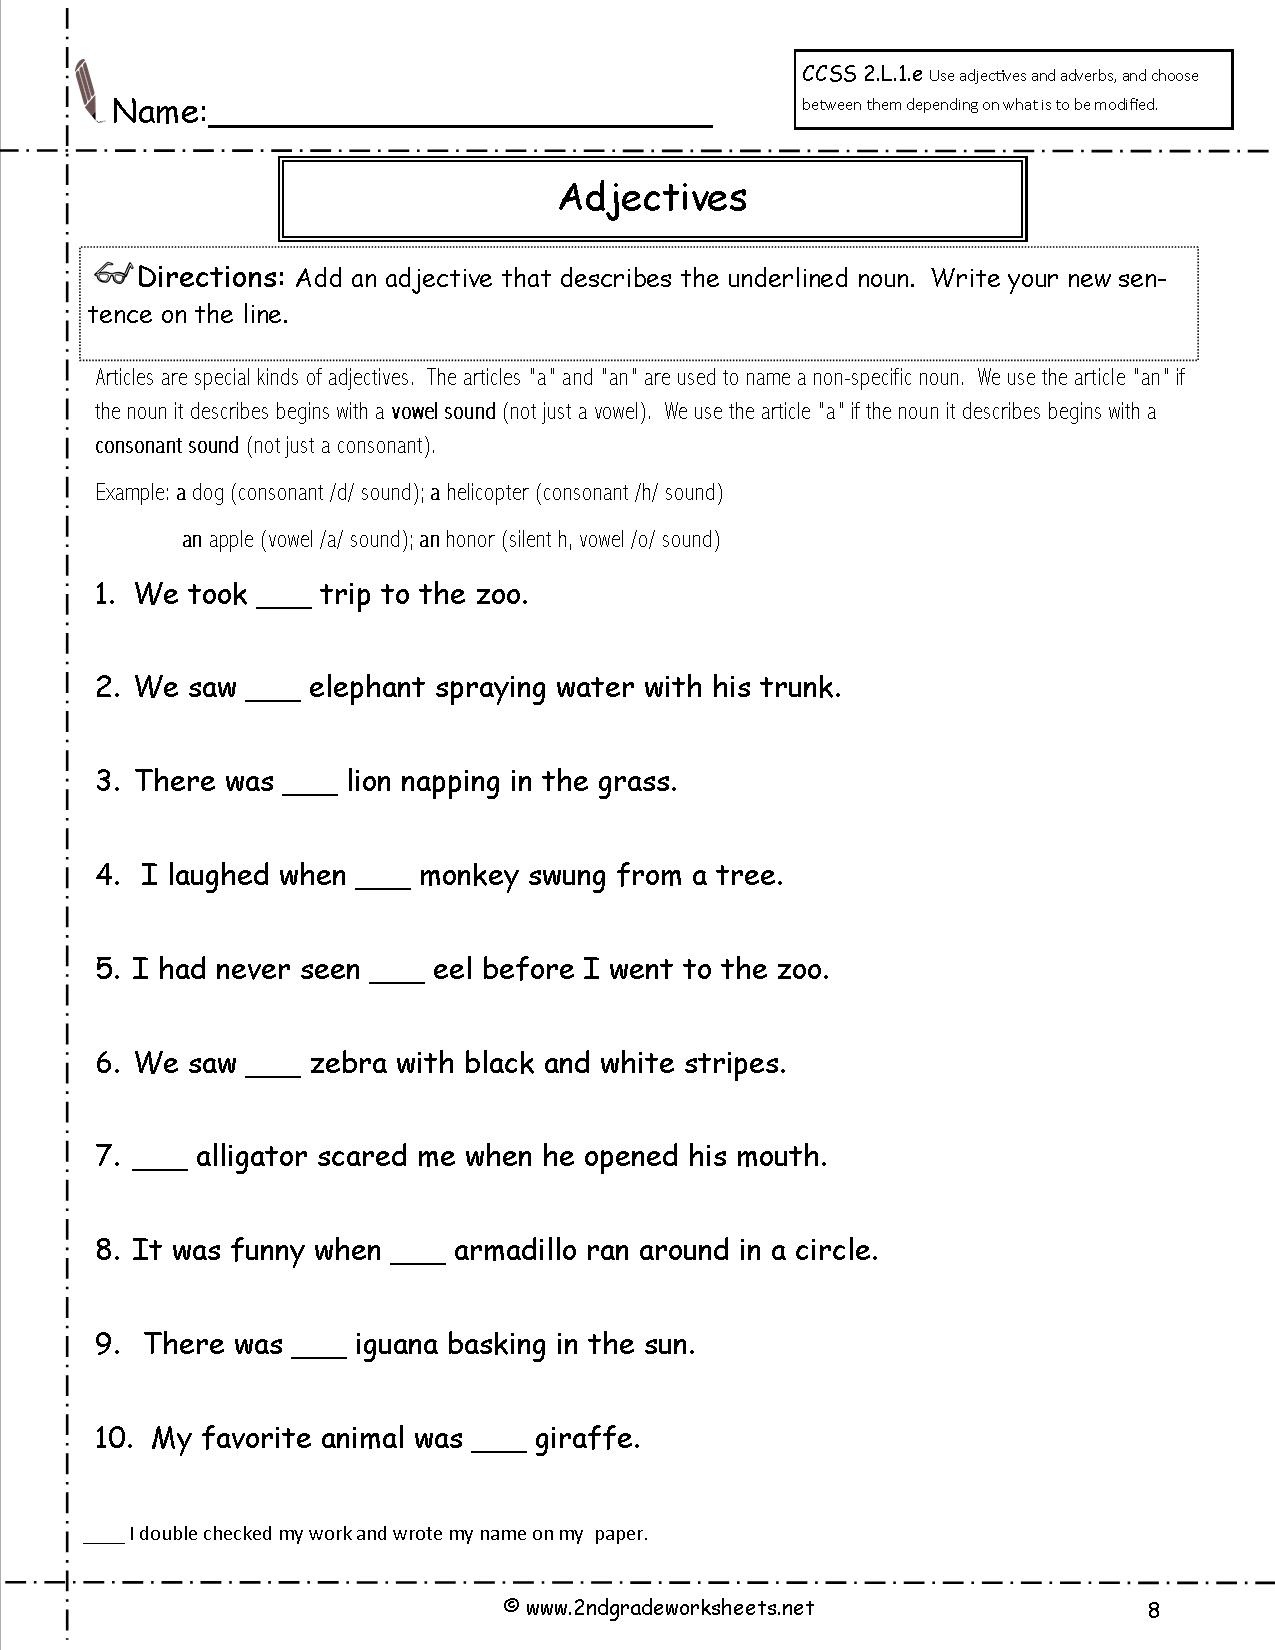 Free Language/grammar Worksheets And Printouts - Free Printable Science Worksheets For 2Nd Grade